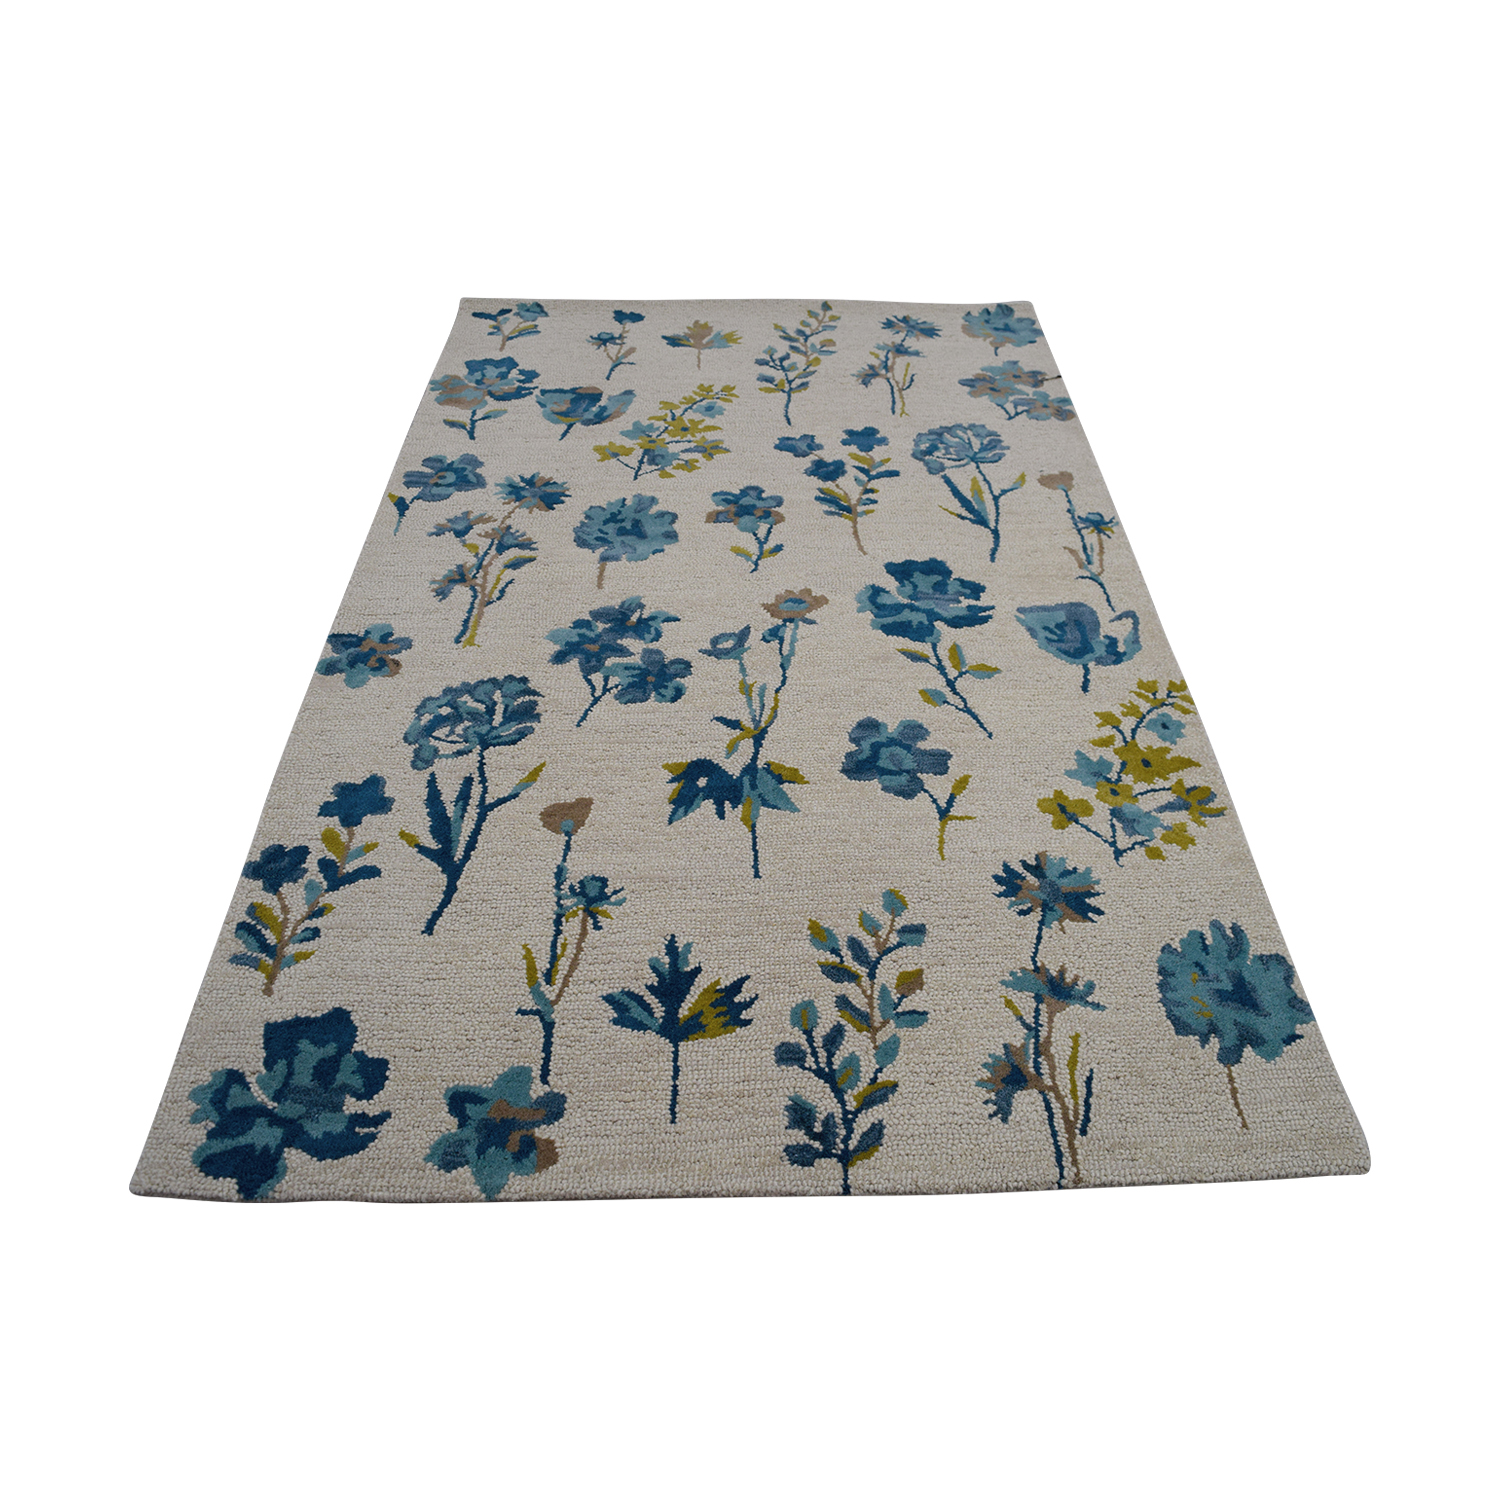 Obeetee Obeetee Flatweave Blue and Beige Floral Wool Rug second hand